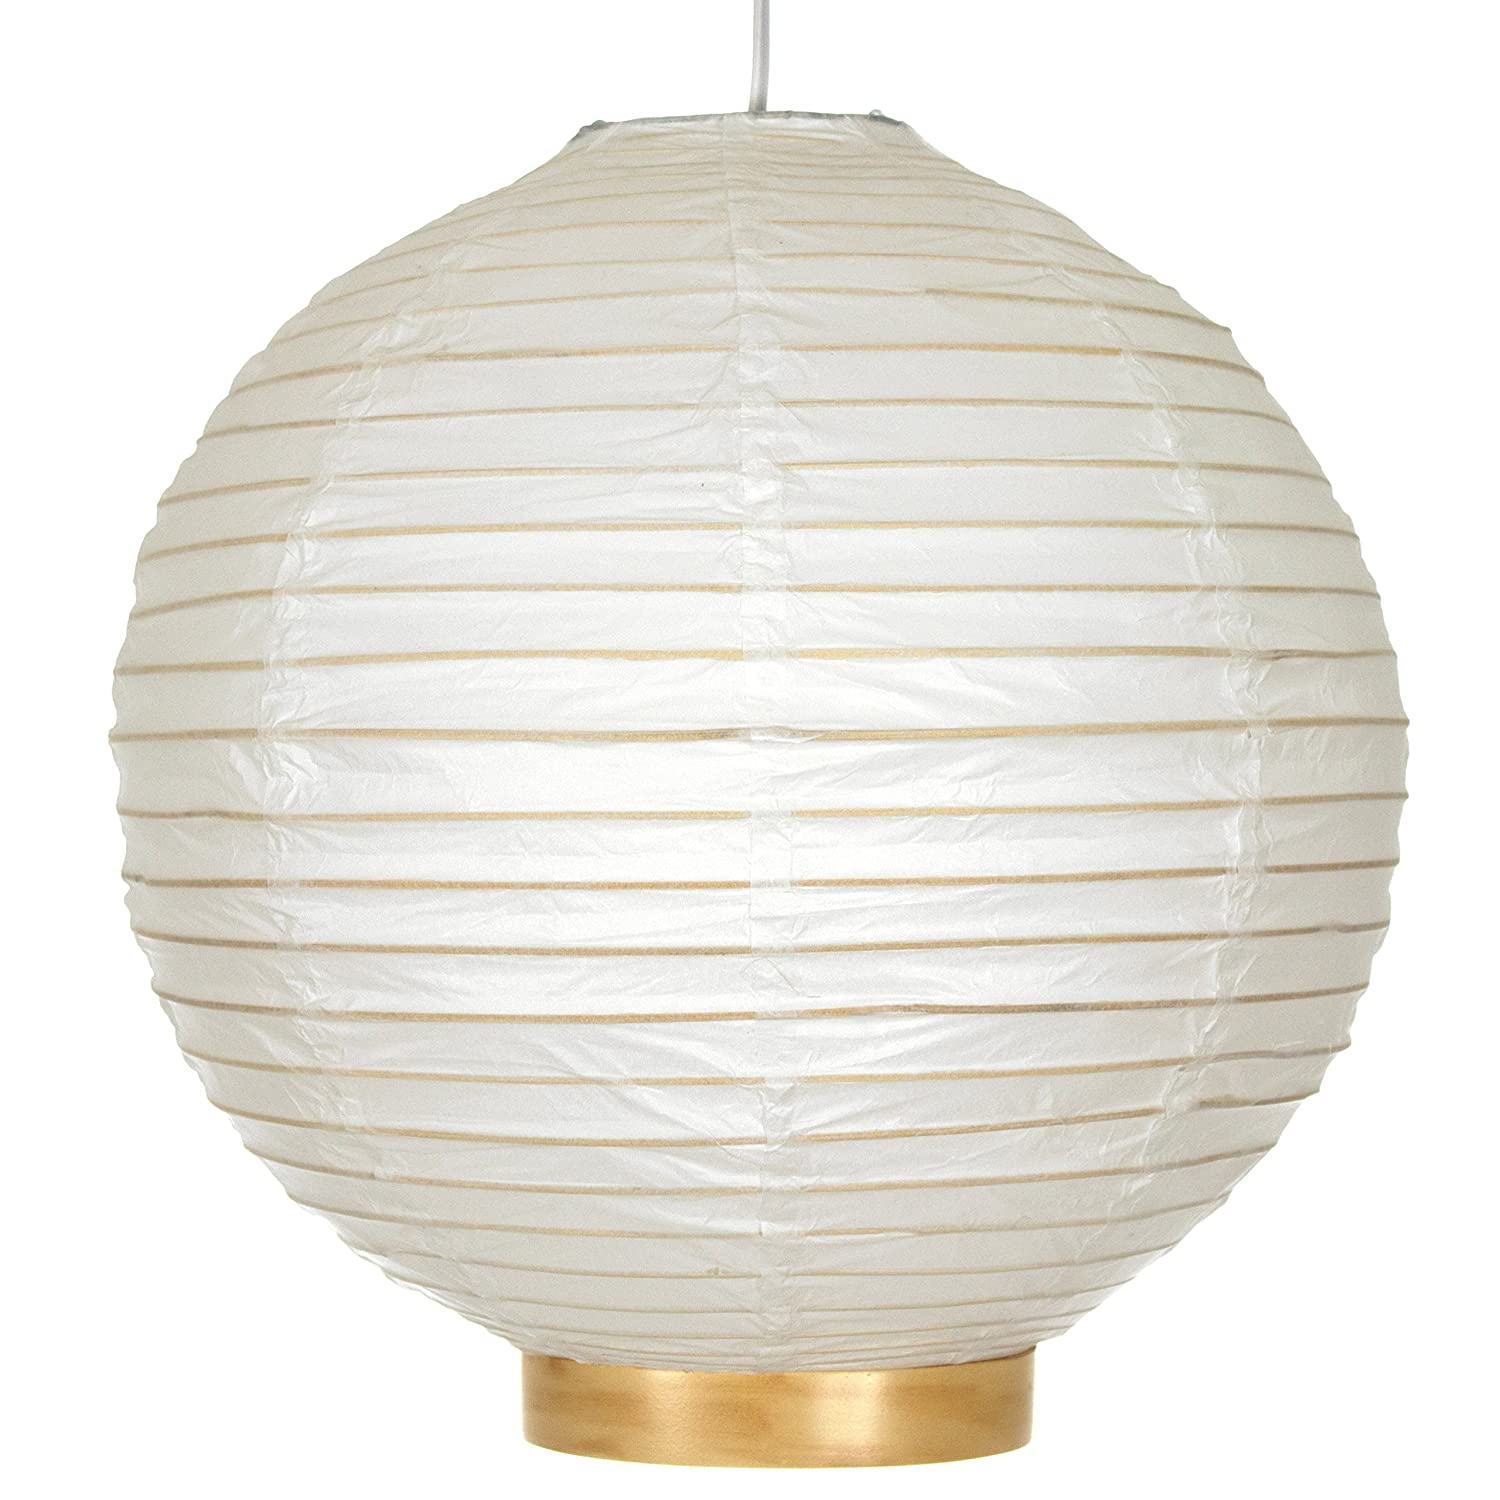 Oriental furniture simple inexpensive ceiling lighting fixture lamp 16 inch maru japanese swag electric bamboo and paper lantern amazon ca tools home